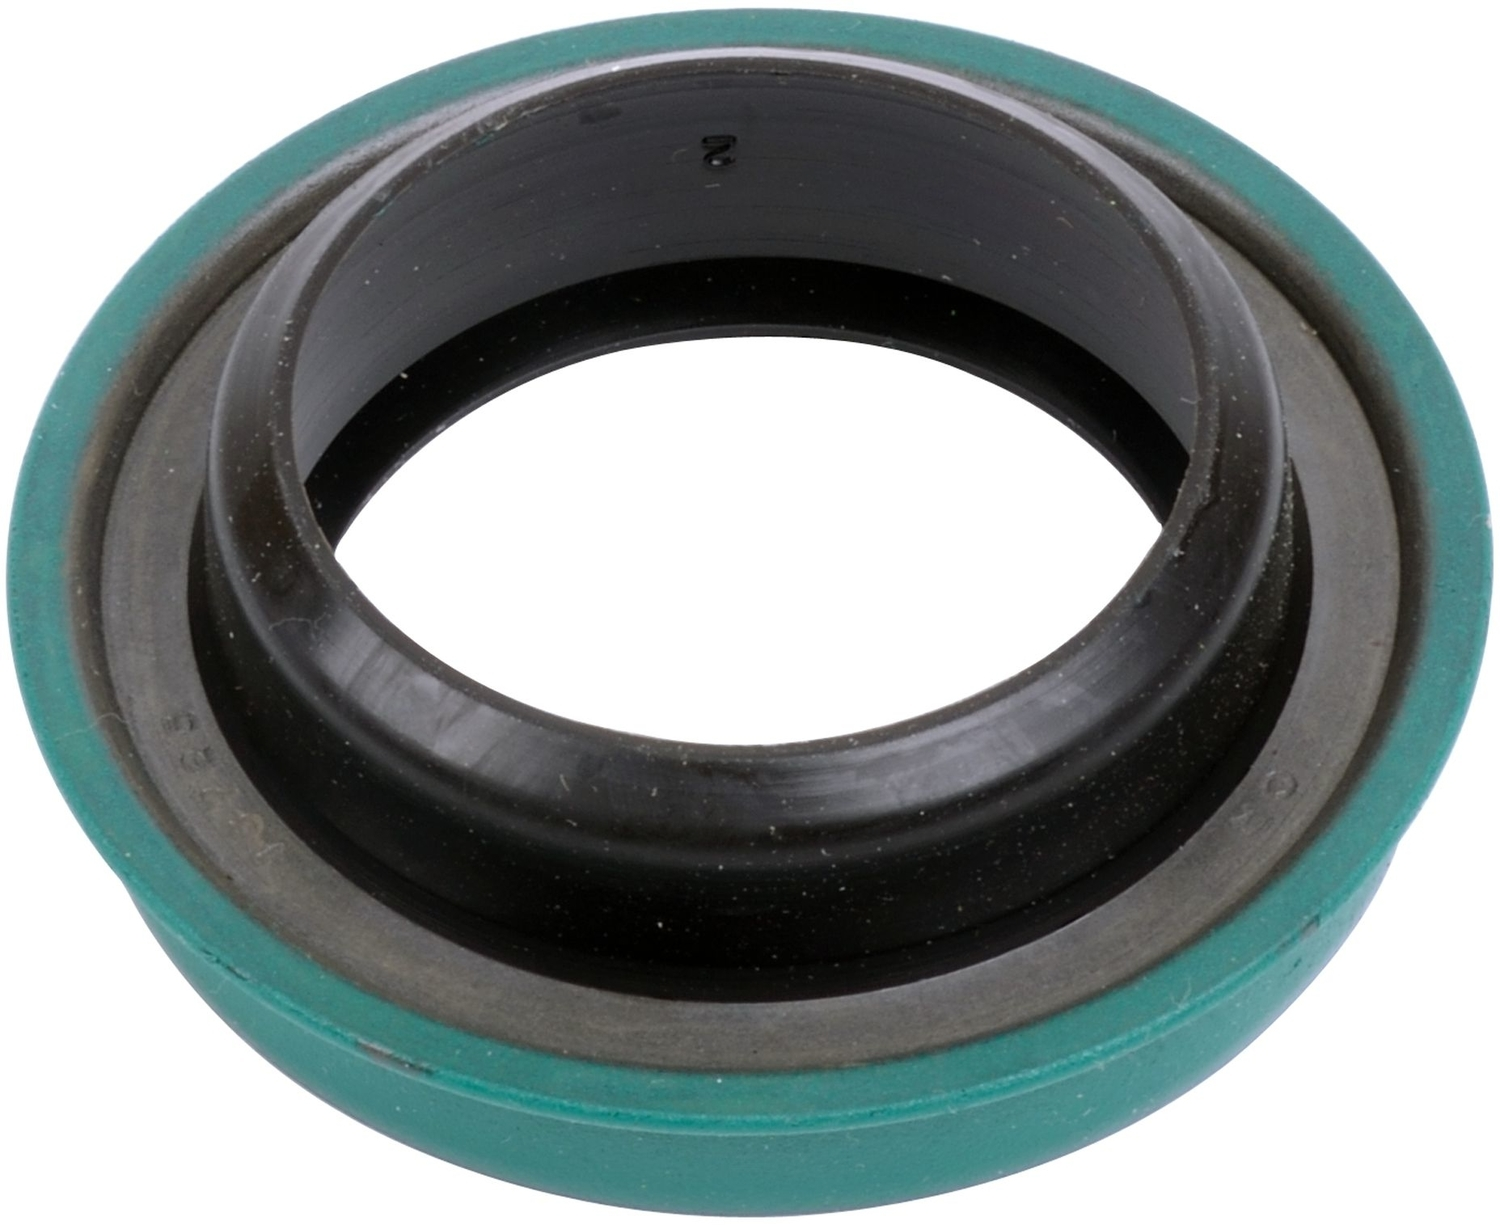 SKF (CHICAGO RAWHIDE) - Manual Trans Input Shaft Seal - SKF 16725